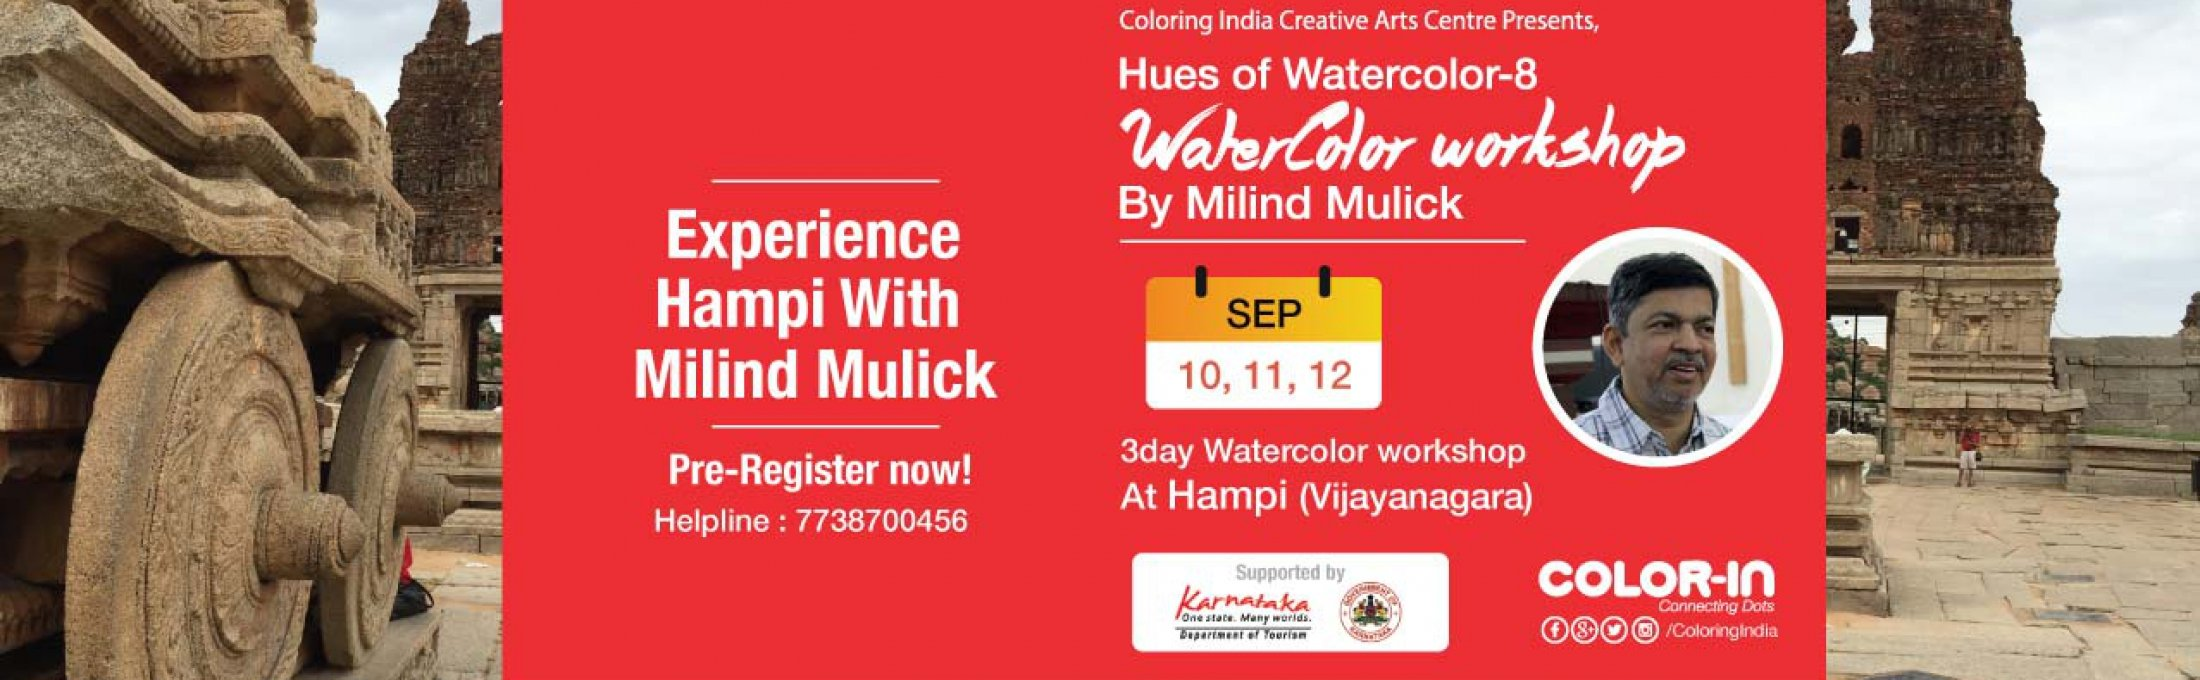 WATERCOLOR PAINTING WORKSHOP BY MILIND MULICK IN HAMPI